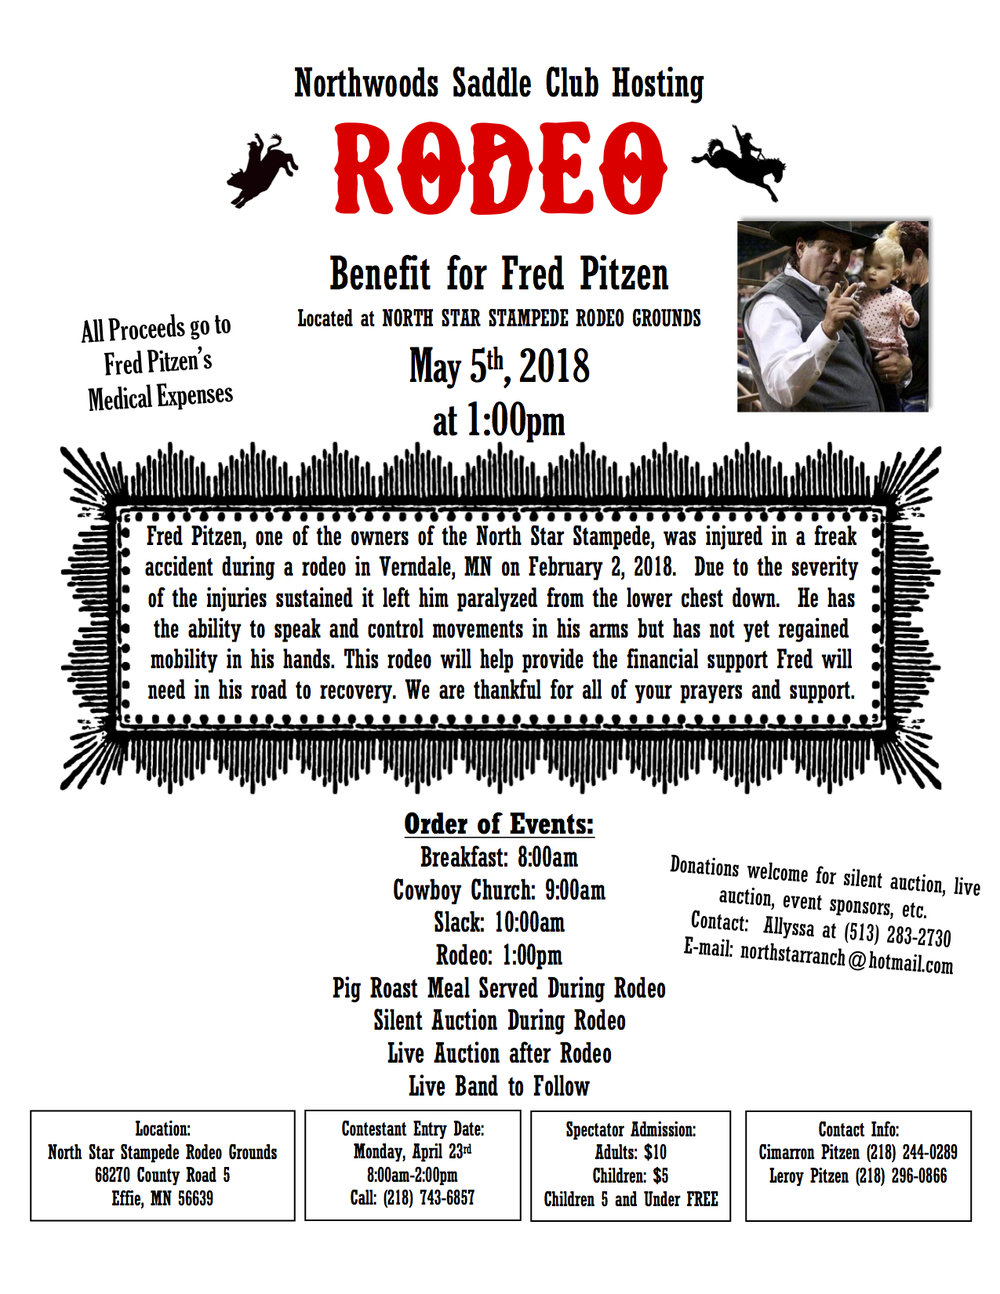 Fred Rodeo Benefit Donation Flyer[15632].jpg